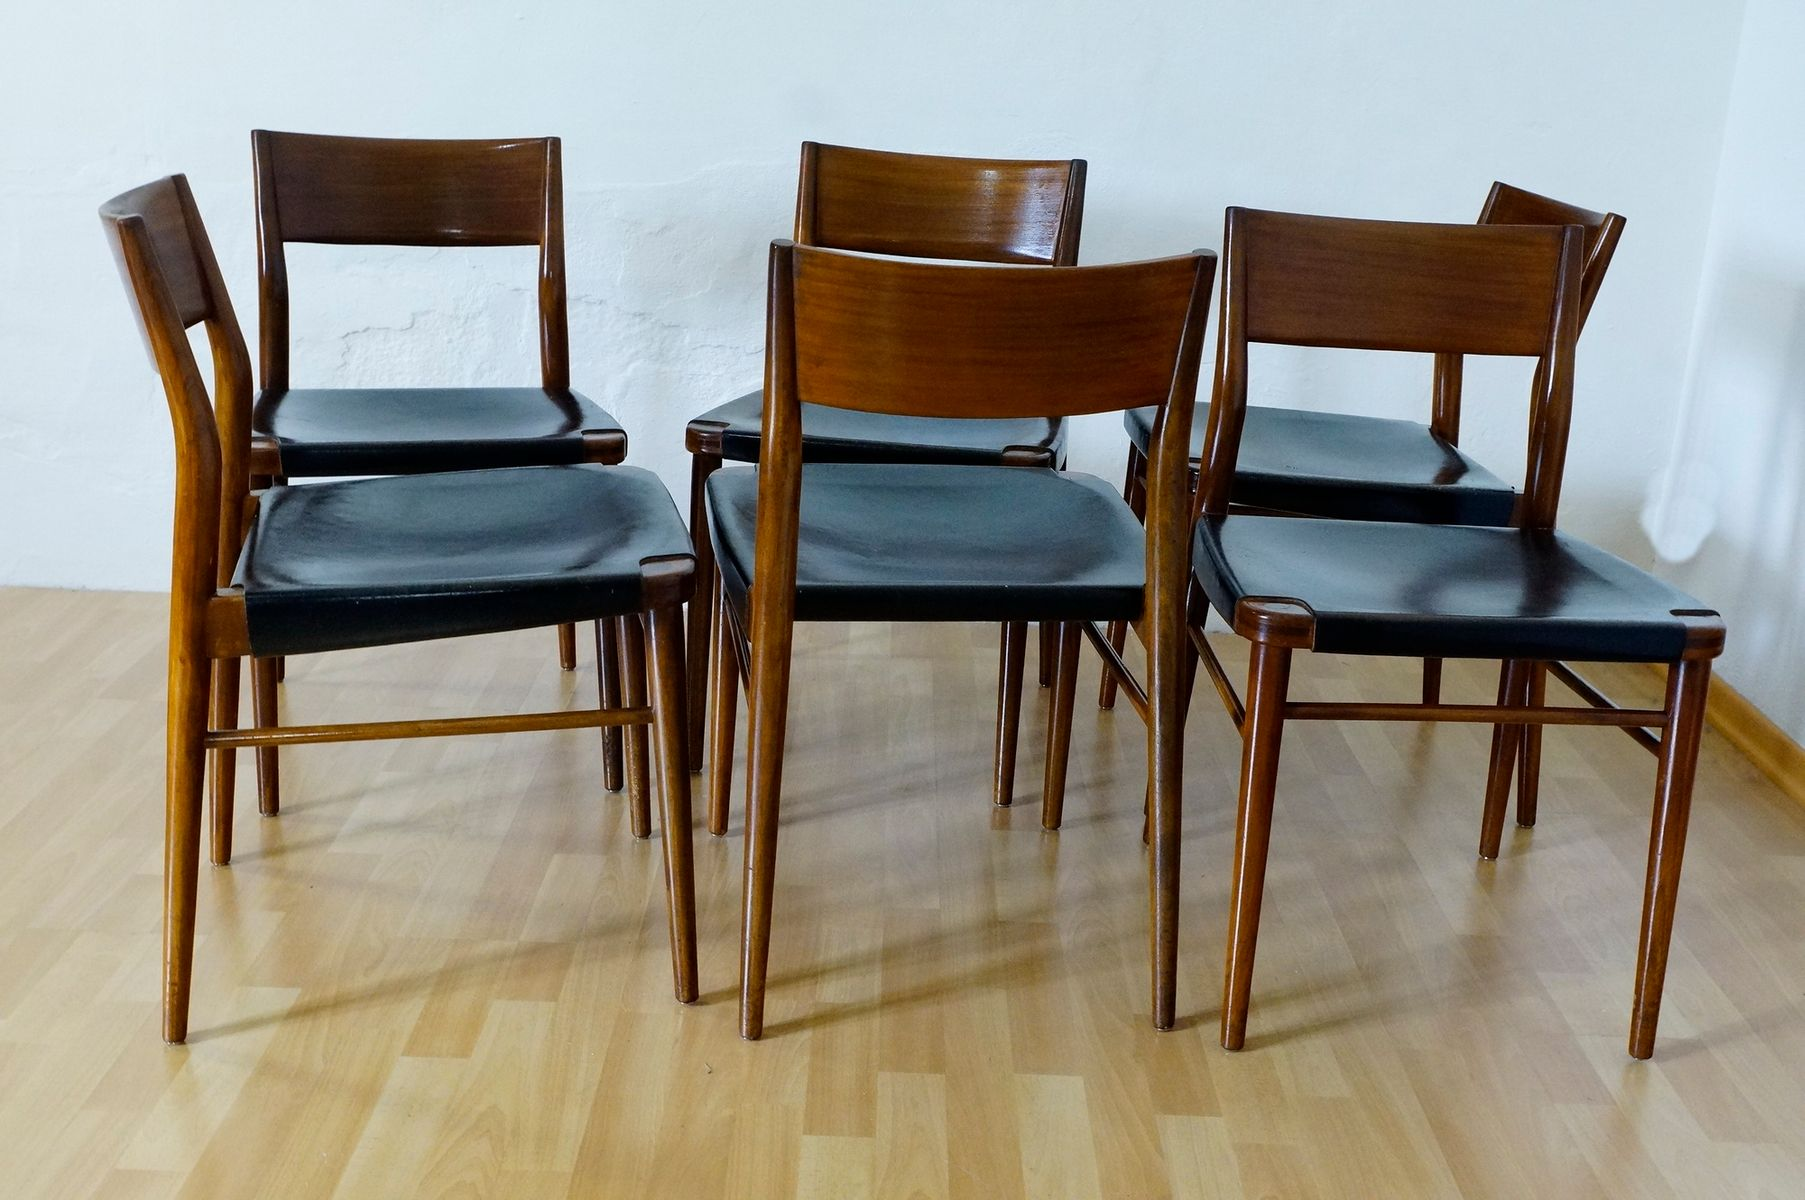 Dining Room Chairs by G. Leowald for Wilkhahn, 1950s, Set of 6 6